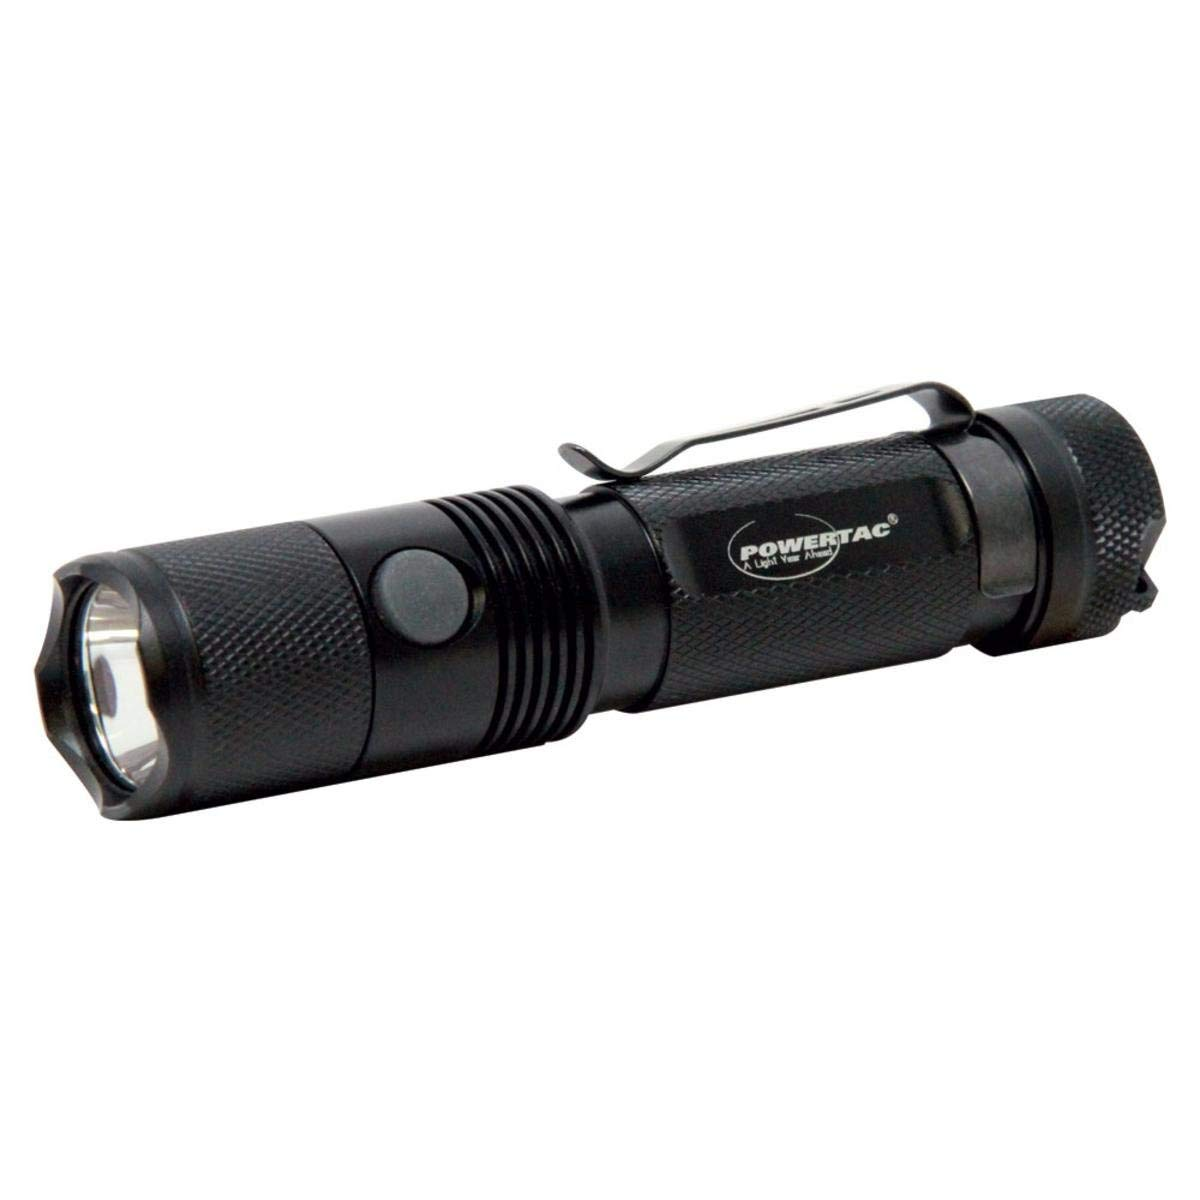 Powertac e20 tactical flashlight